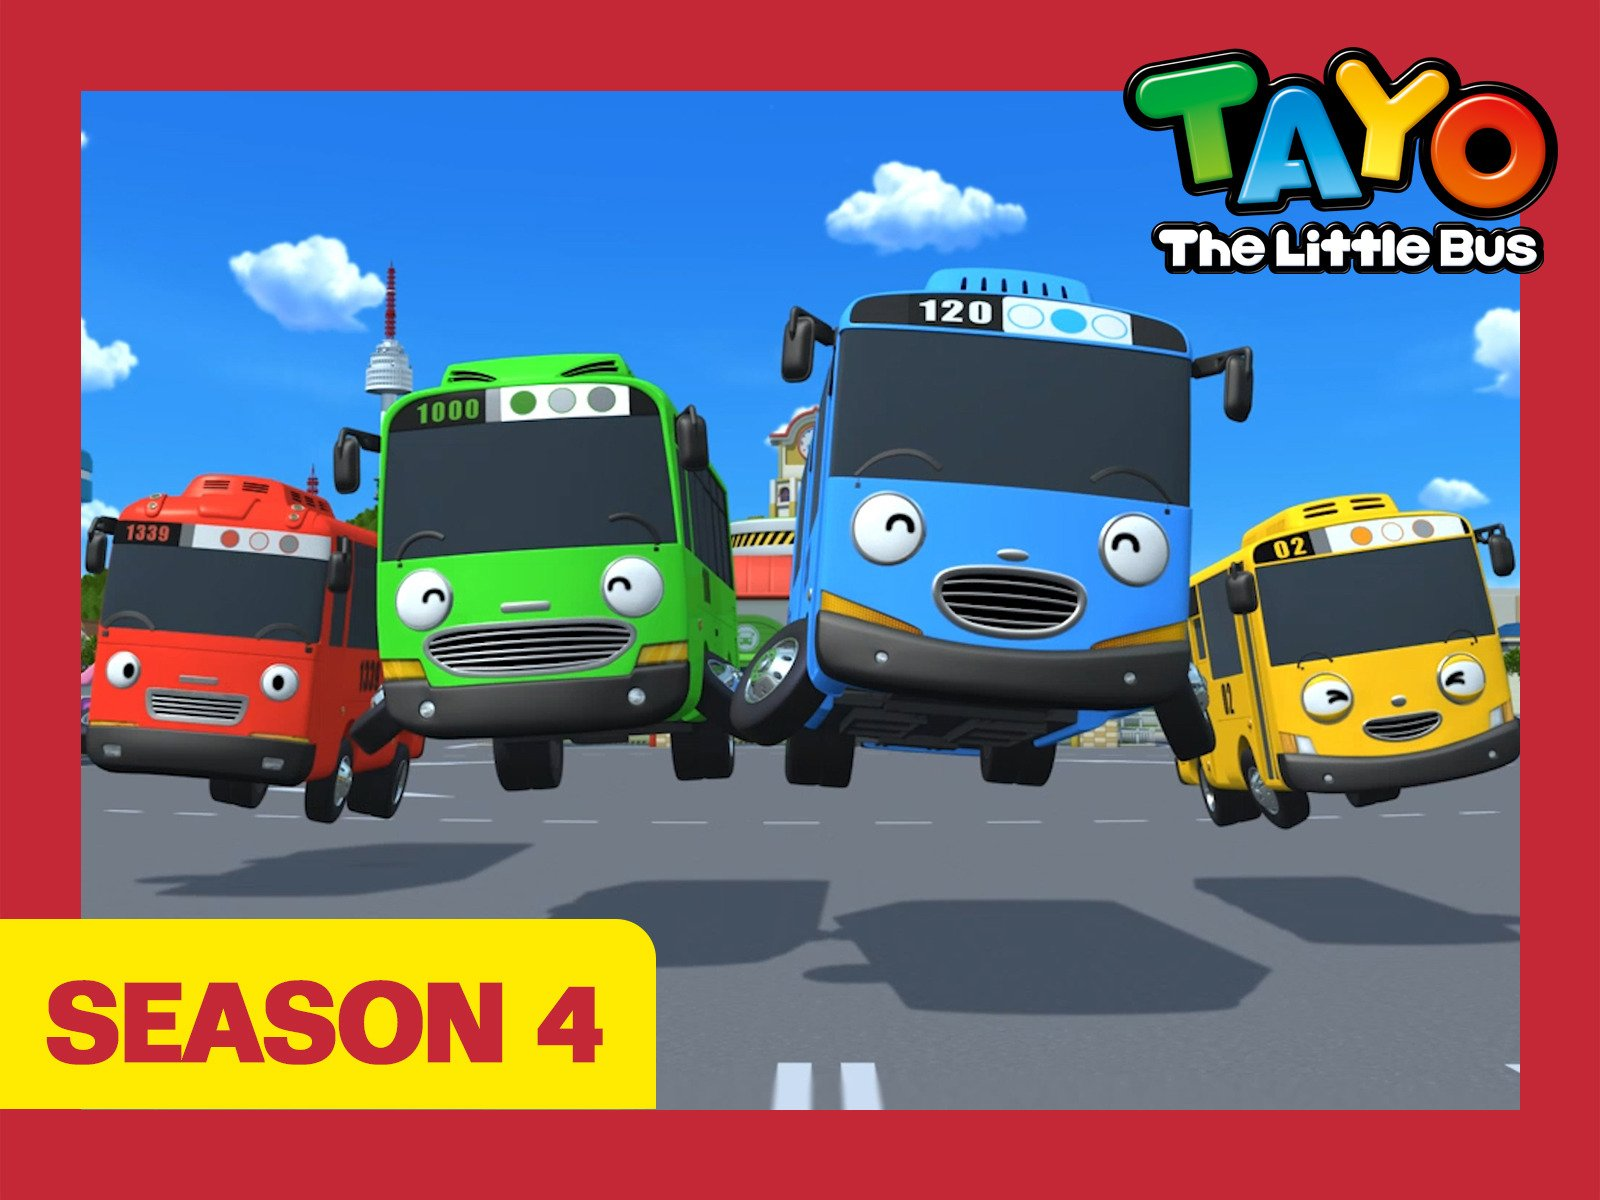 Tayo the Little Bus - Season 4